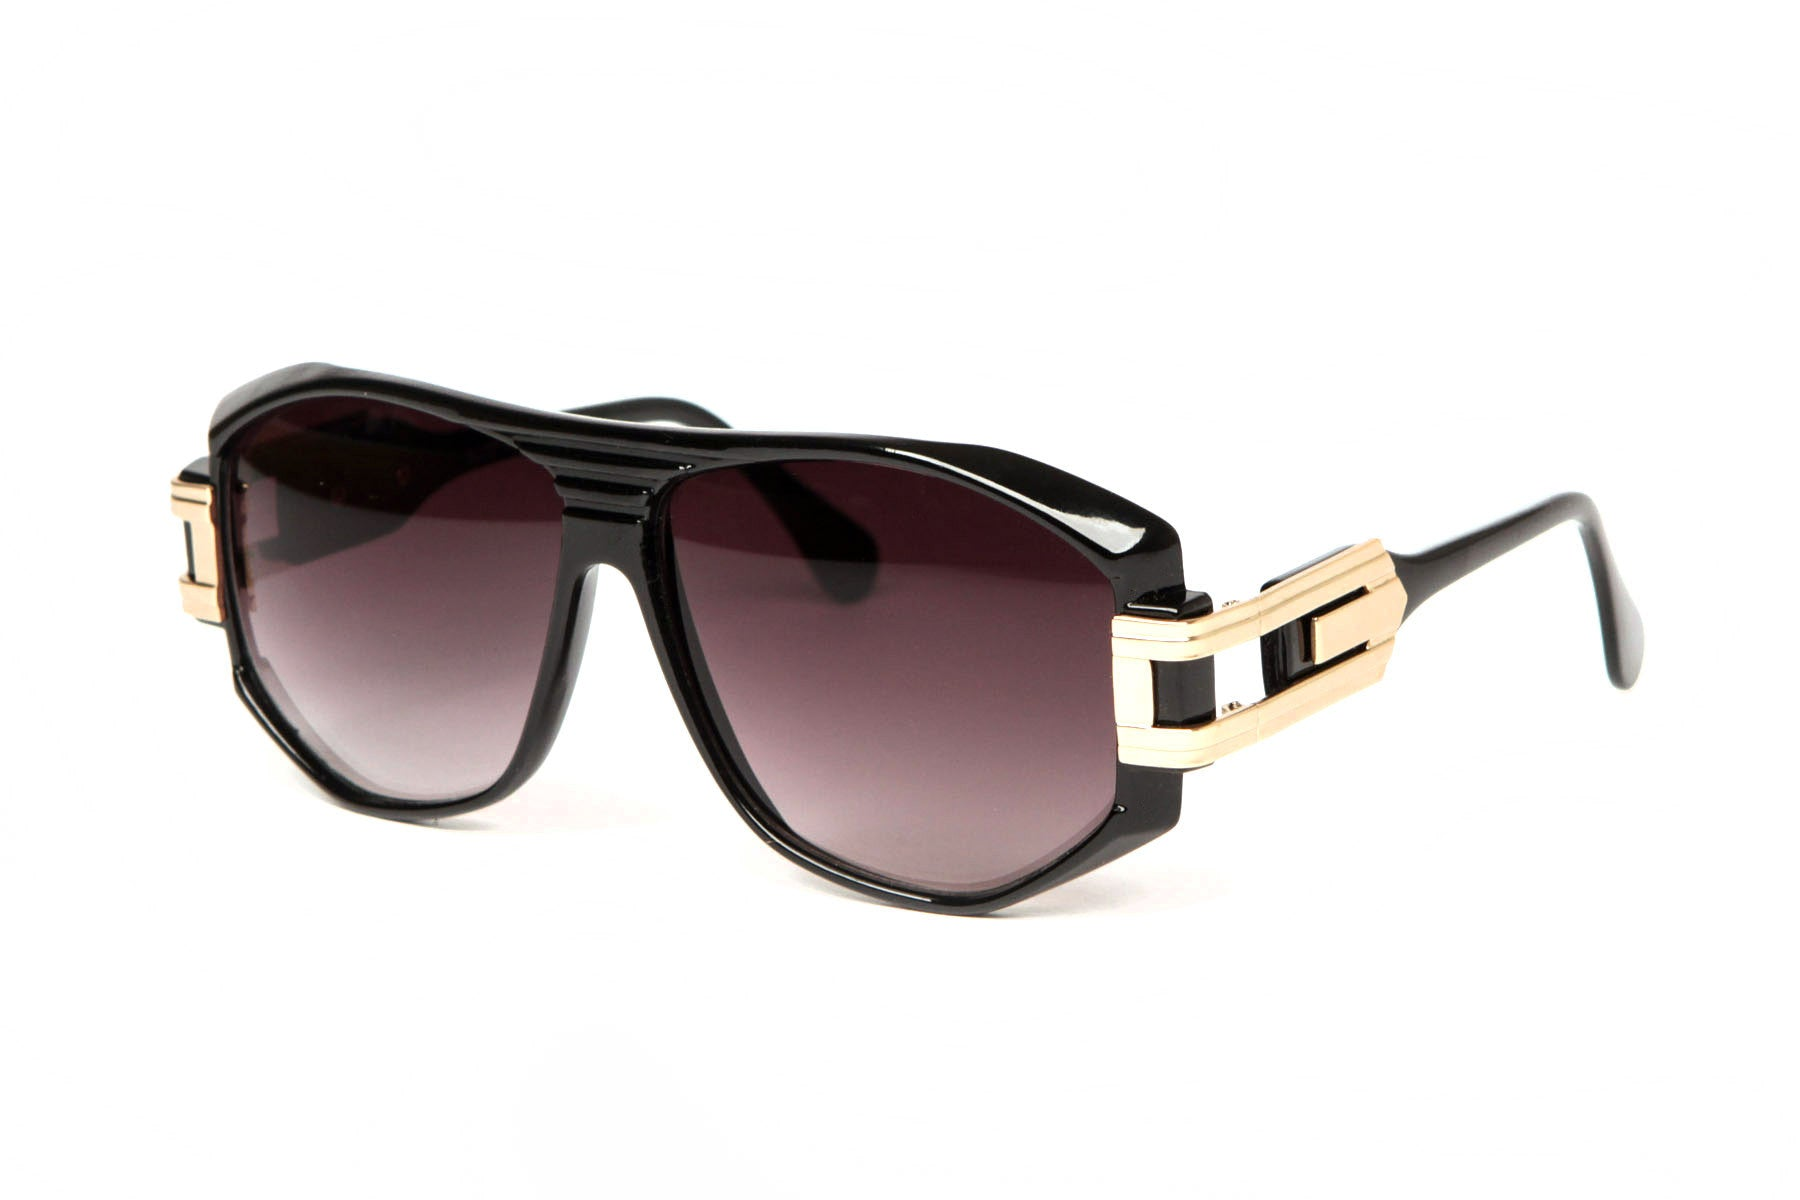 Gazelle Vintage Aviator Sunglasses